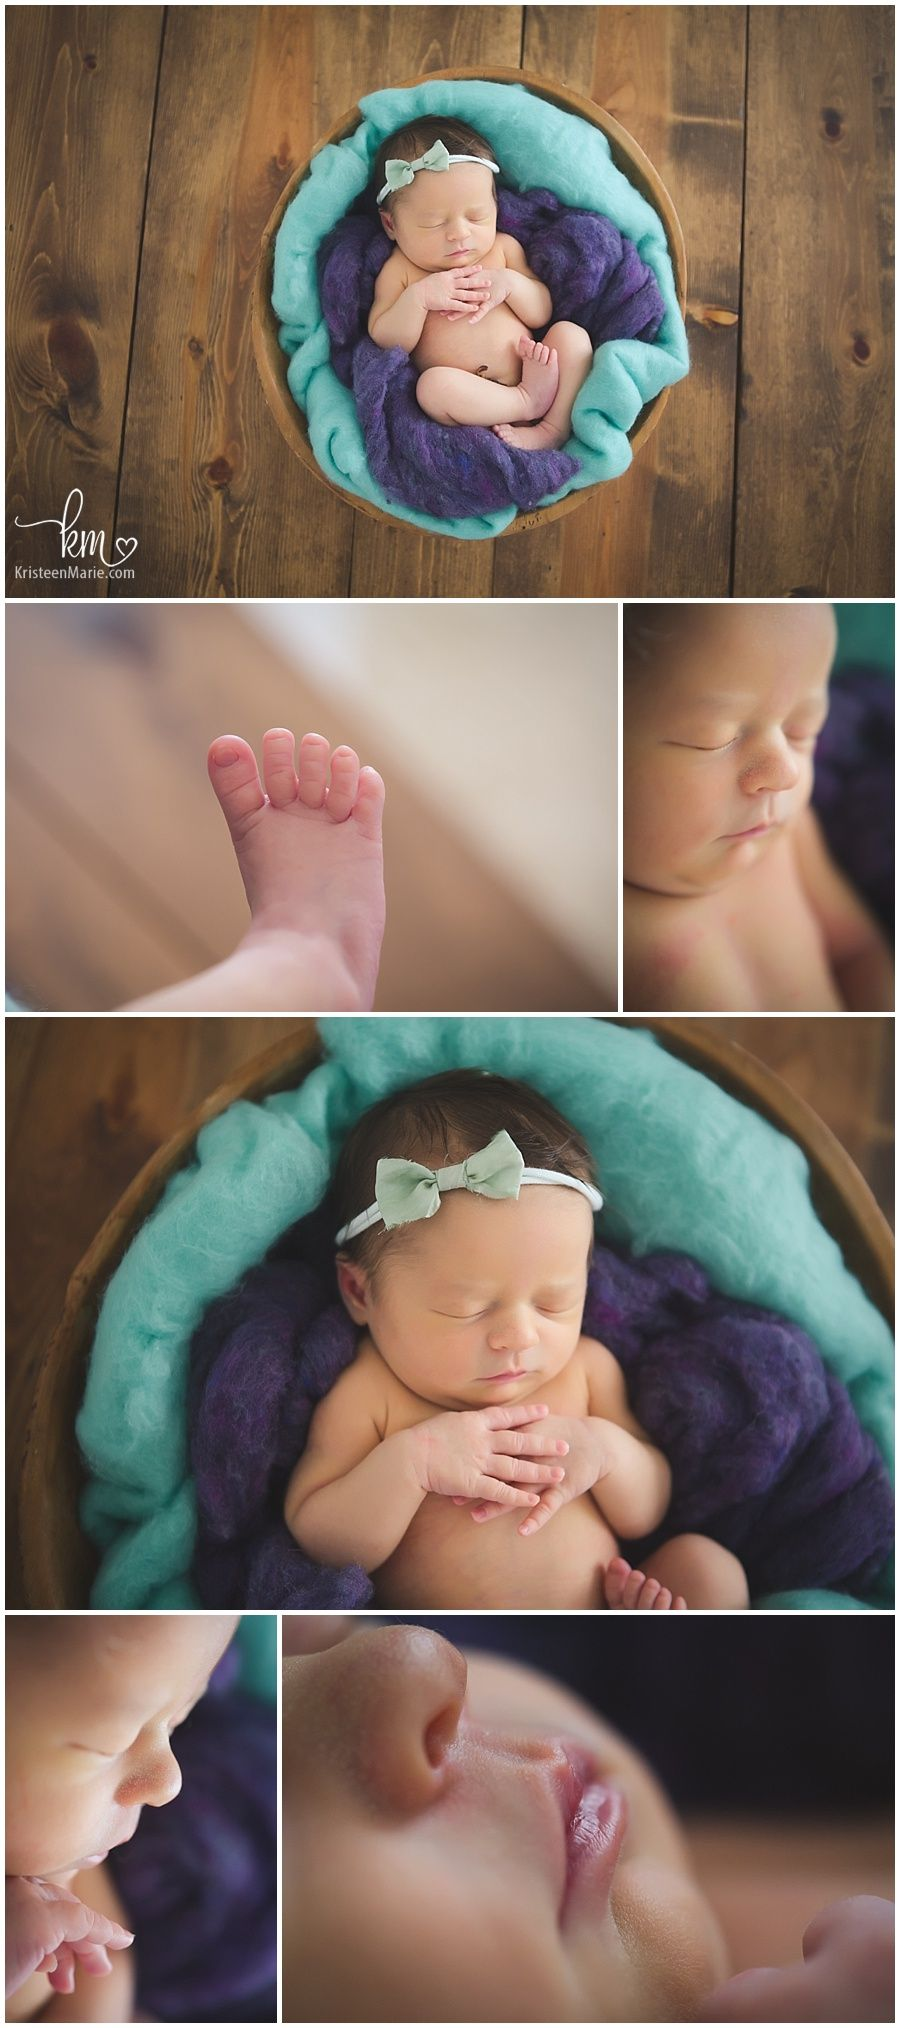 Teal and purple newborn photograph rustic image and baby features